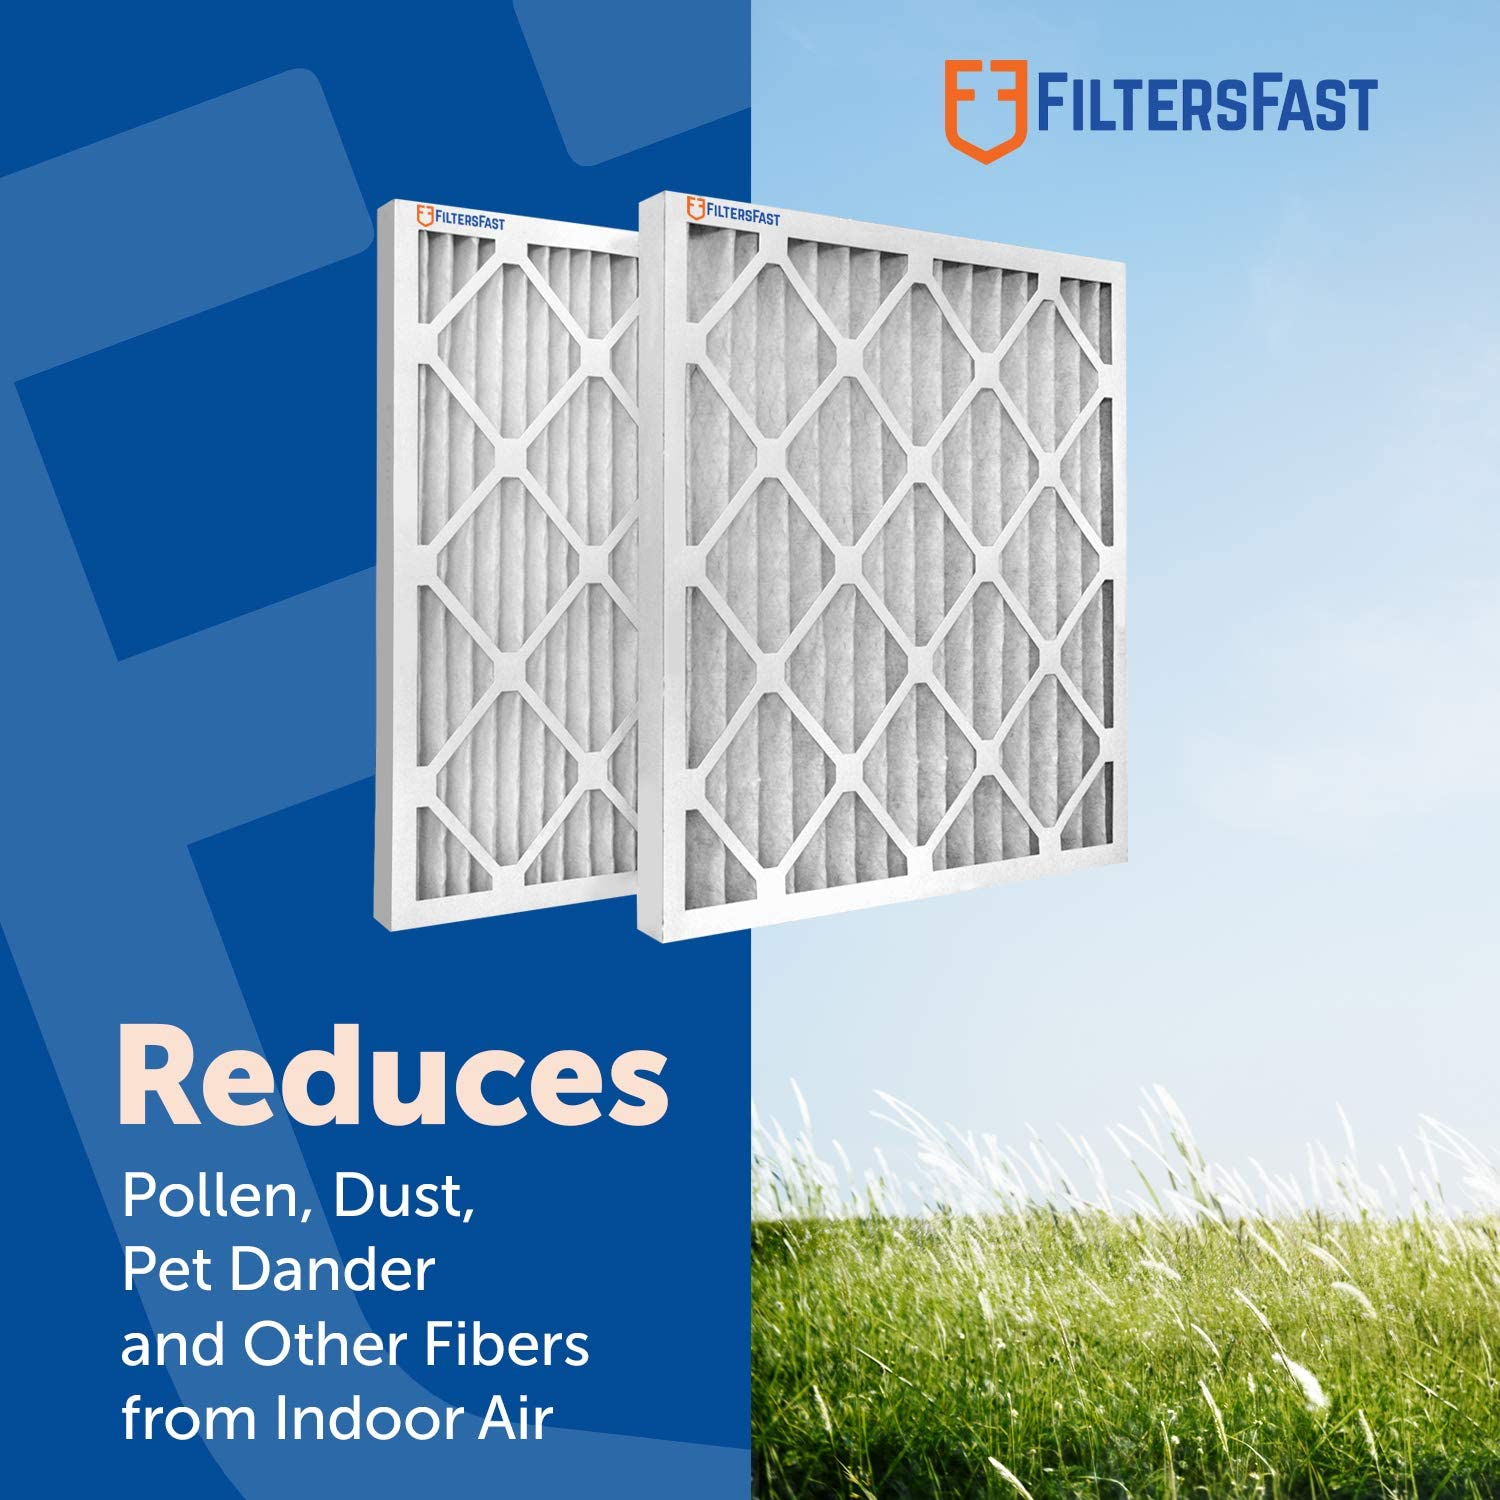 6 Pack Filters Fast 18x20x1 Pleated Air Filter Merv 11 Made in the USA 1 AC Furnace Air Filters Actual Size: 17.75x19.75x0.75/""